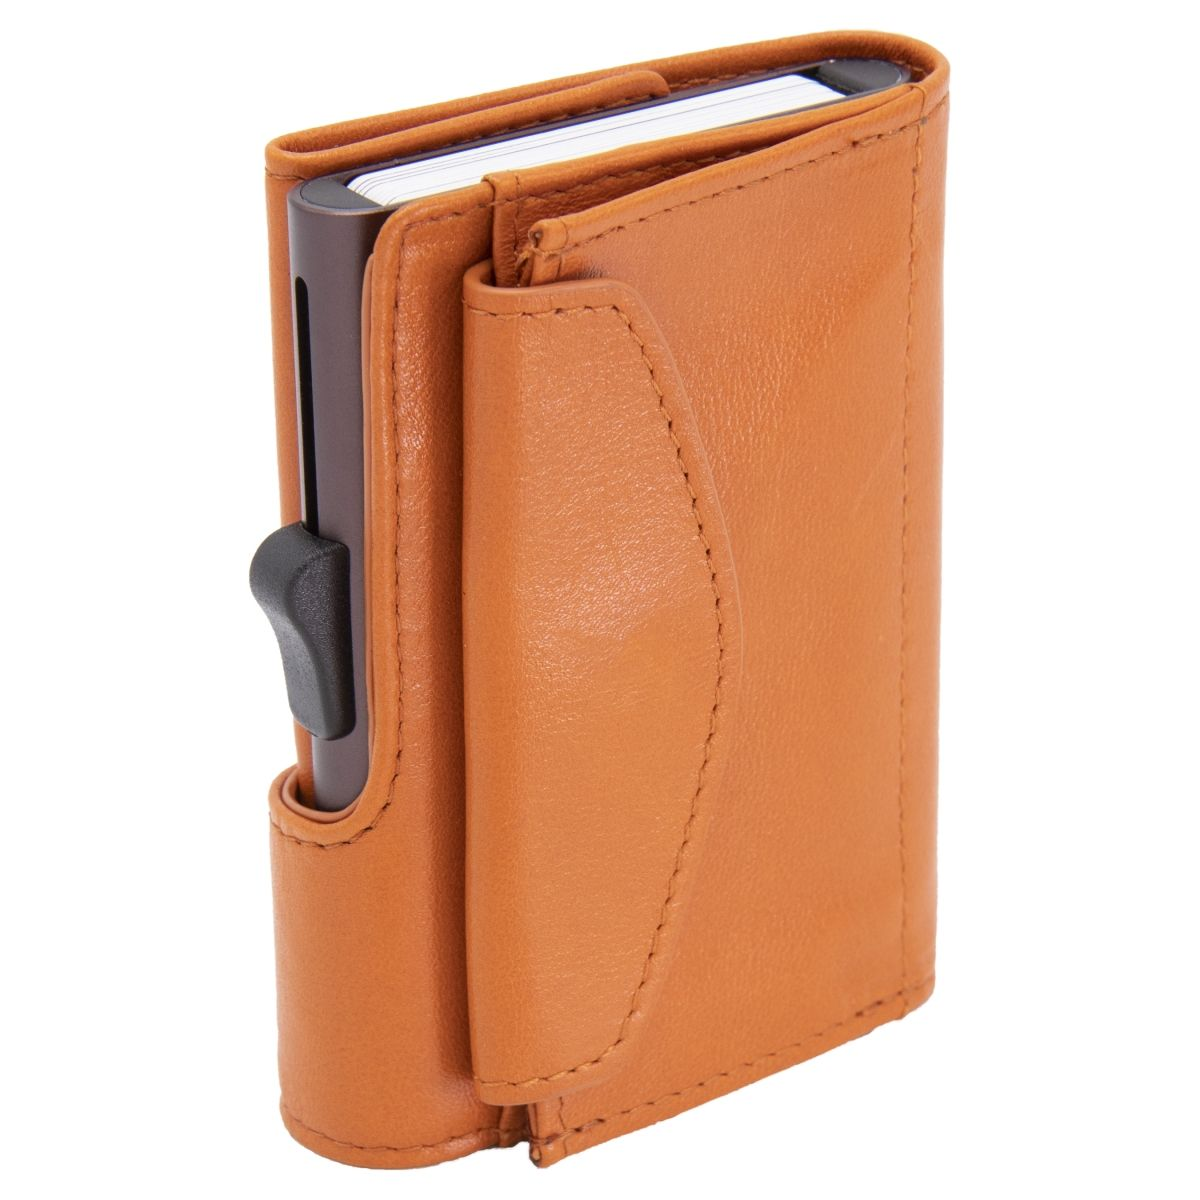 C-Secure XL Aluminum Wallet with Genuine Leather and Coins Pocket - Arancio